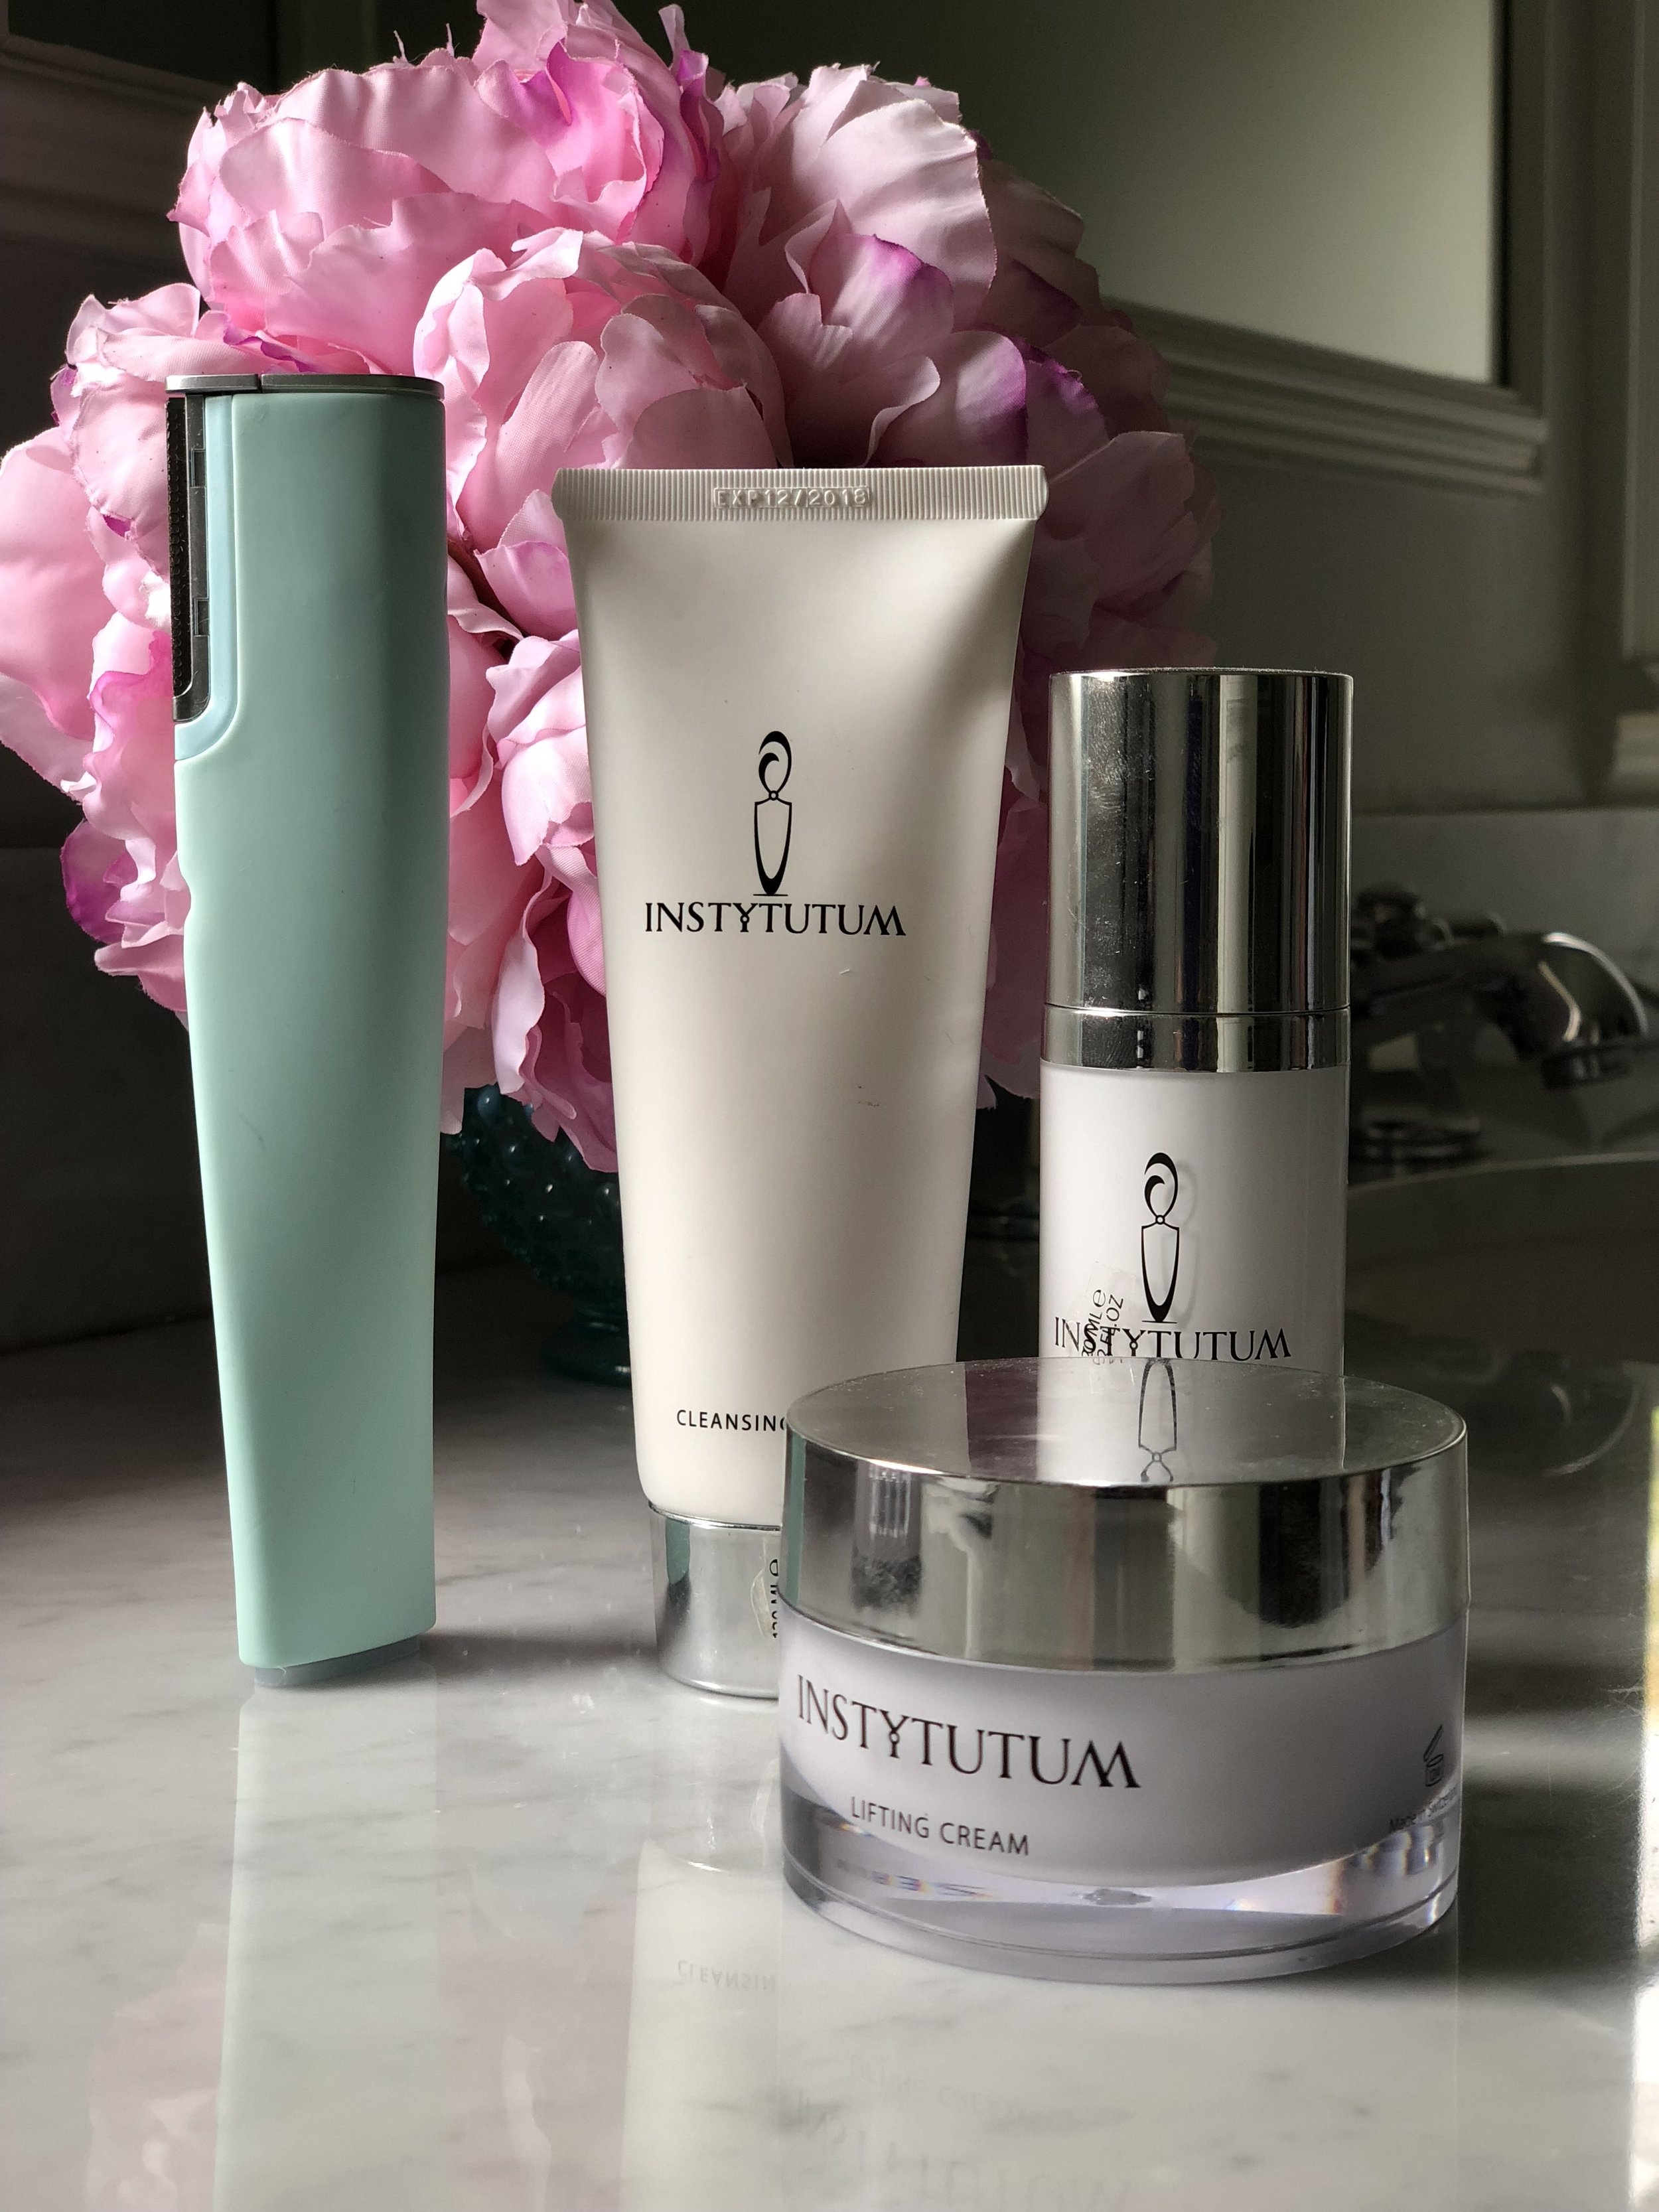 Instytutum Products I use with Dermaflash / Use Discount Code BEFLAWLESS